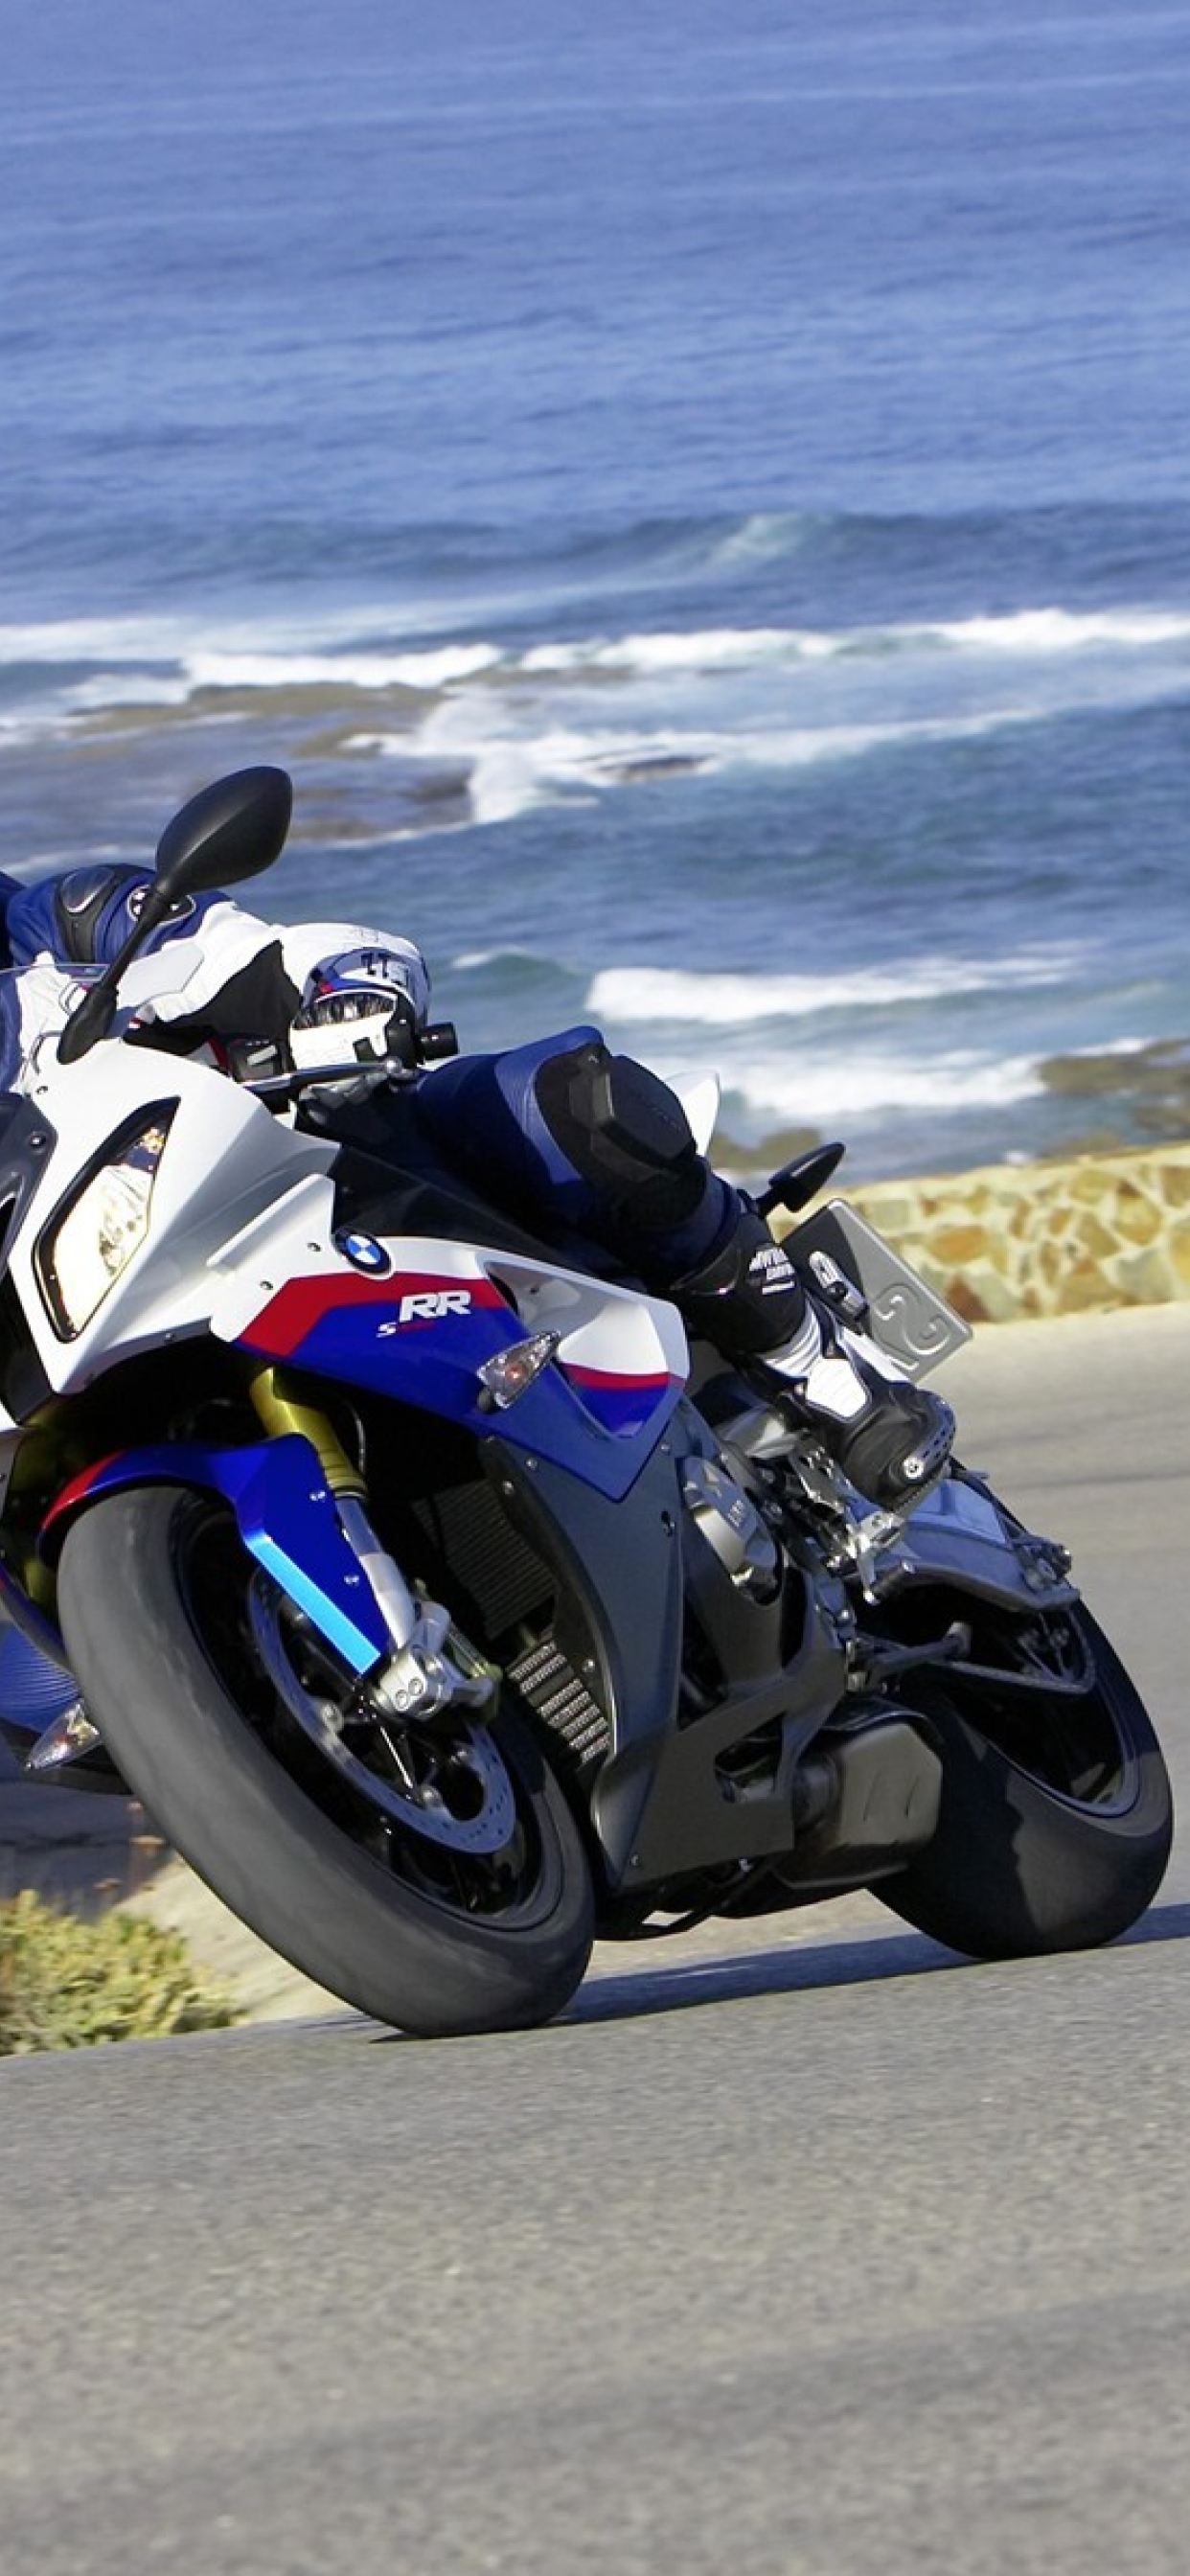 1242x2688 Bmw S1000rr Bmw Motorcycle Iphone Xs Max Wallpaper Hd Other 4k Wallpapers Images Photos And Background